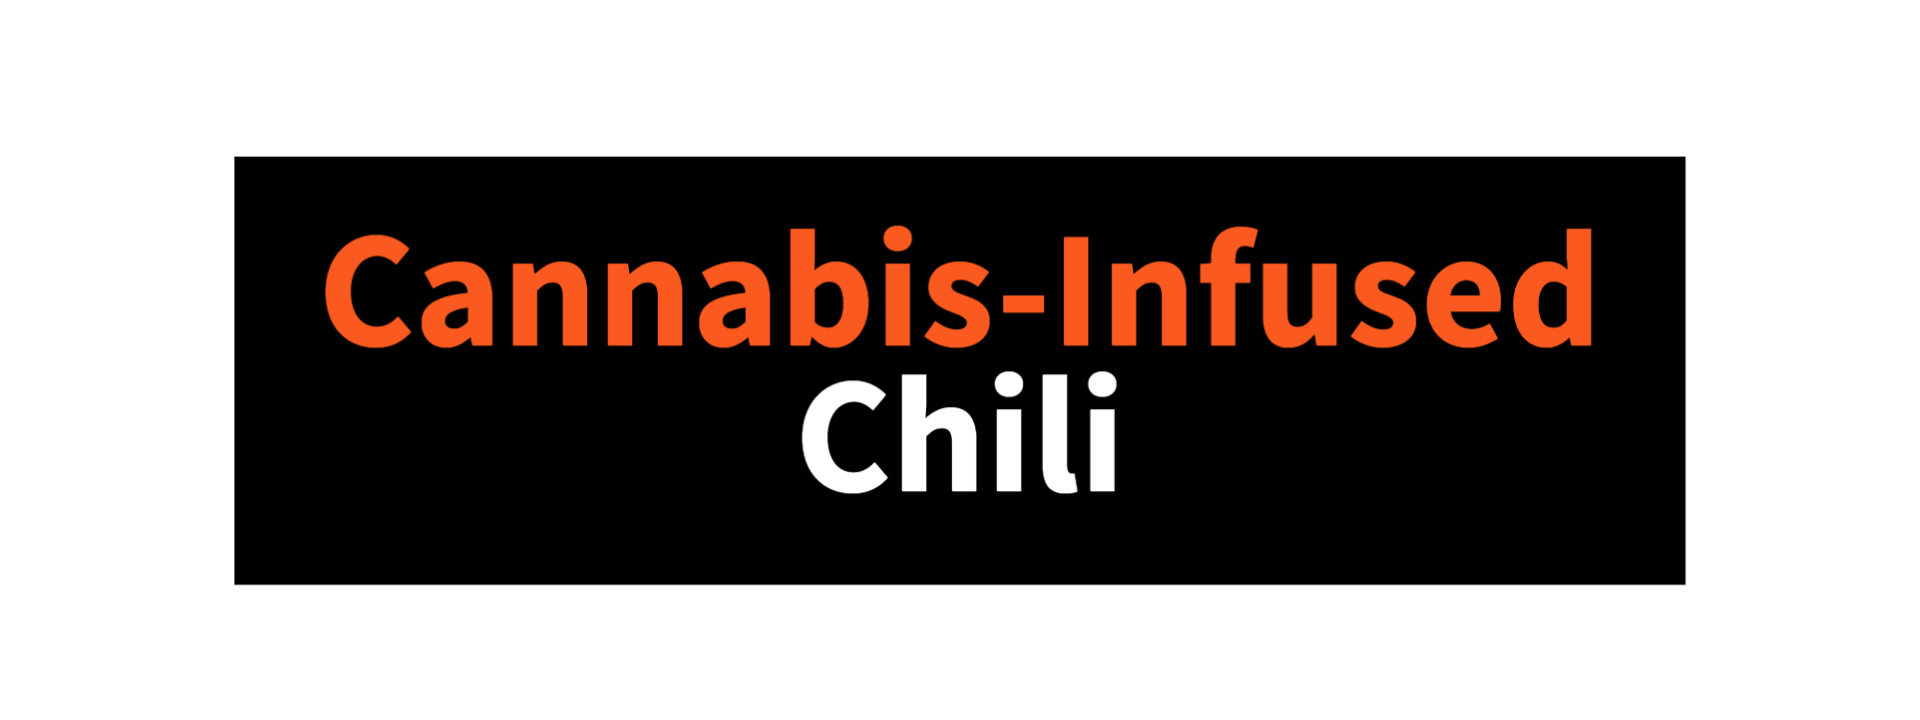 Celebrate the Big Game with a Big Bowl of Cannabis-Infused Chili